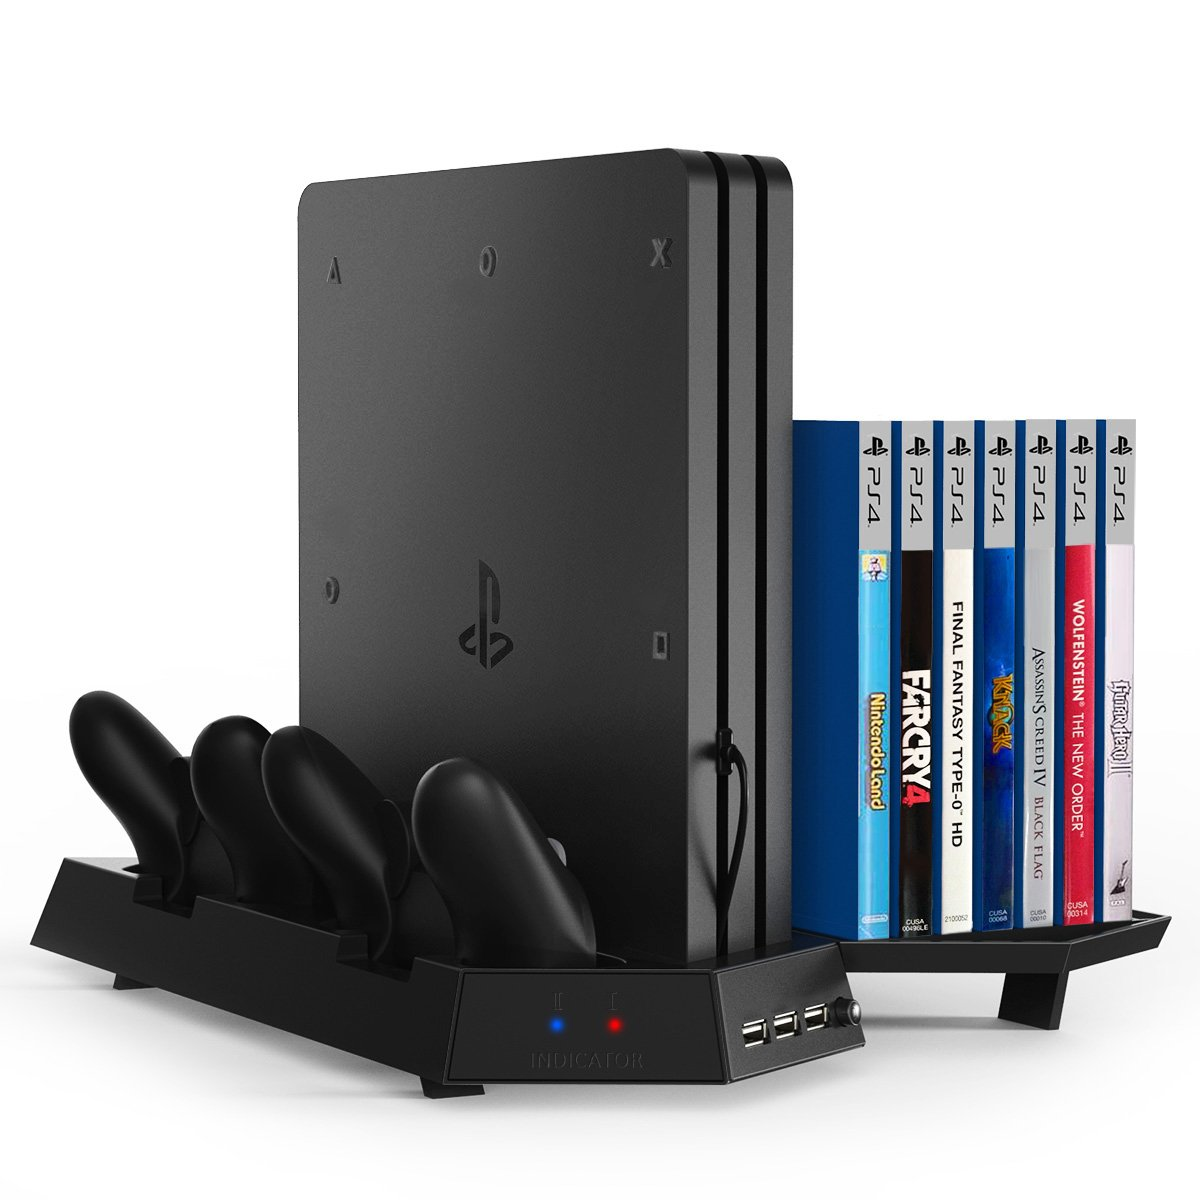 Kootek Vertical Stand for PS4 Pro with Game Storage and Cooling Fan Dual Controller Charger Station for Sony Playstation 4 Pro Dualshock 4 Controller ( Not for Slim / Regular PS4 ) by Kootek